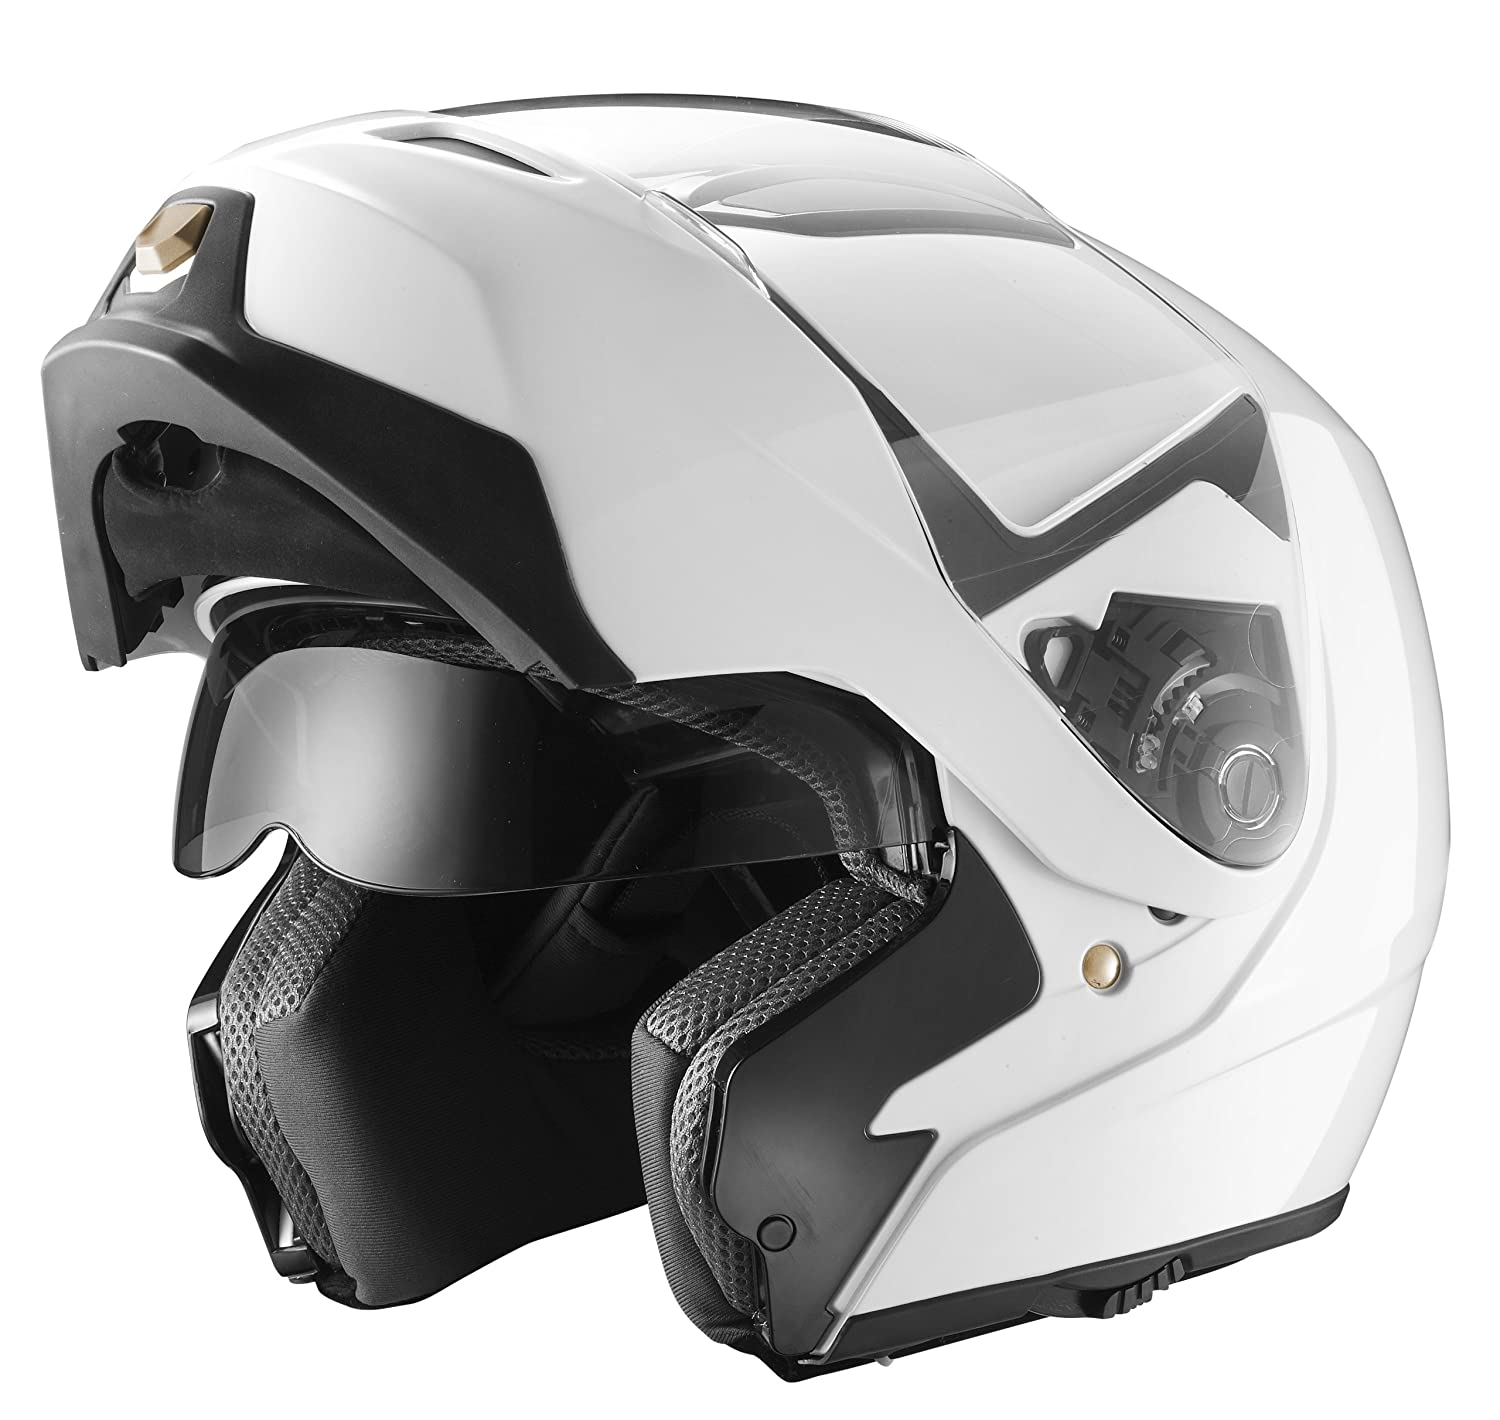 best motorcycle helmets, GLX Modular Helmet with Sun Shield (White, Medium)